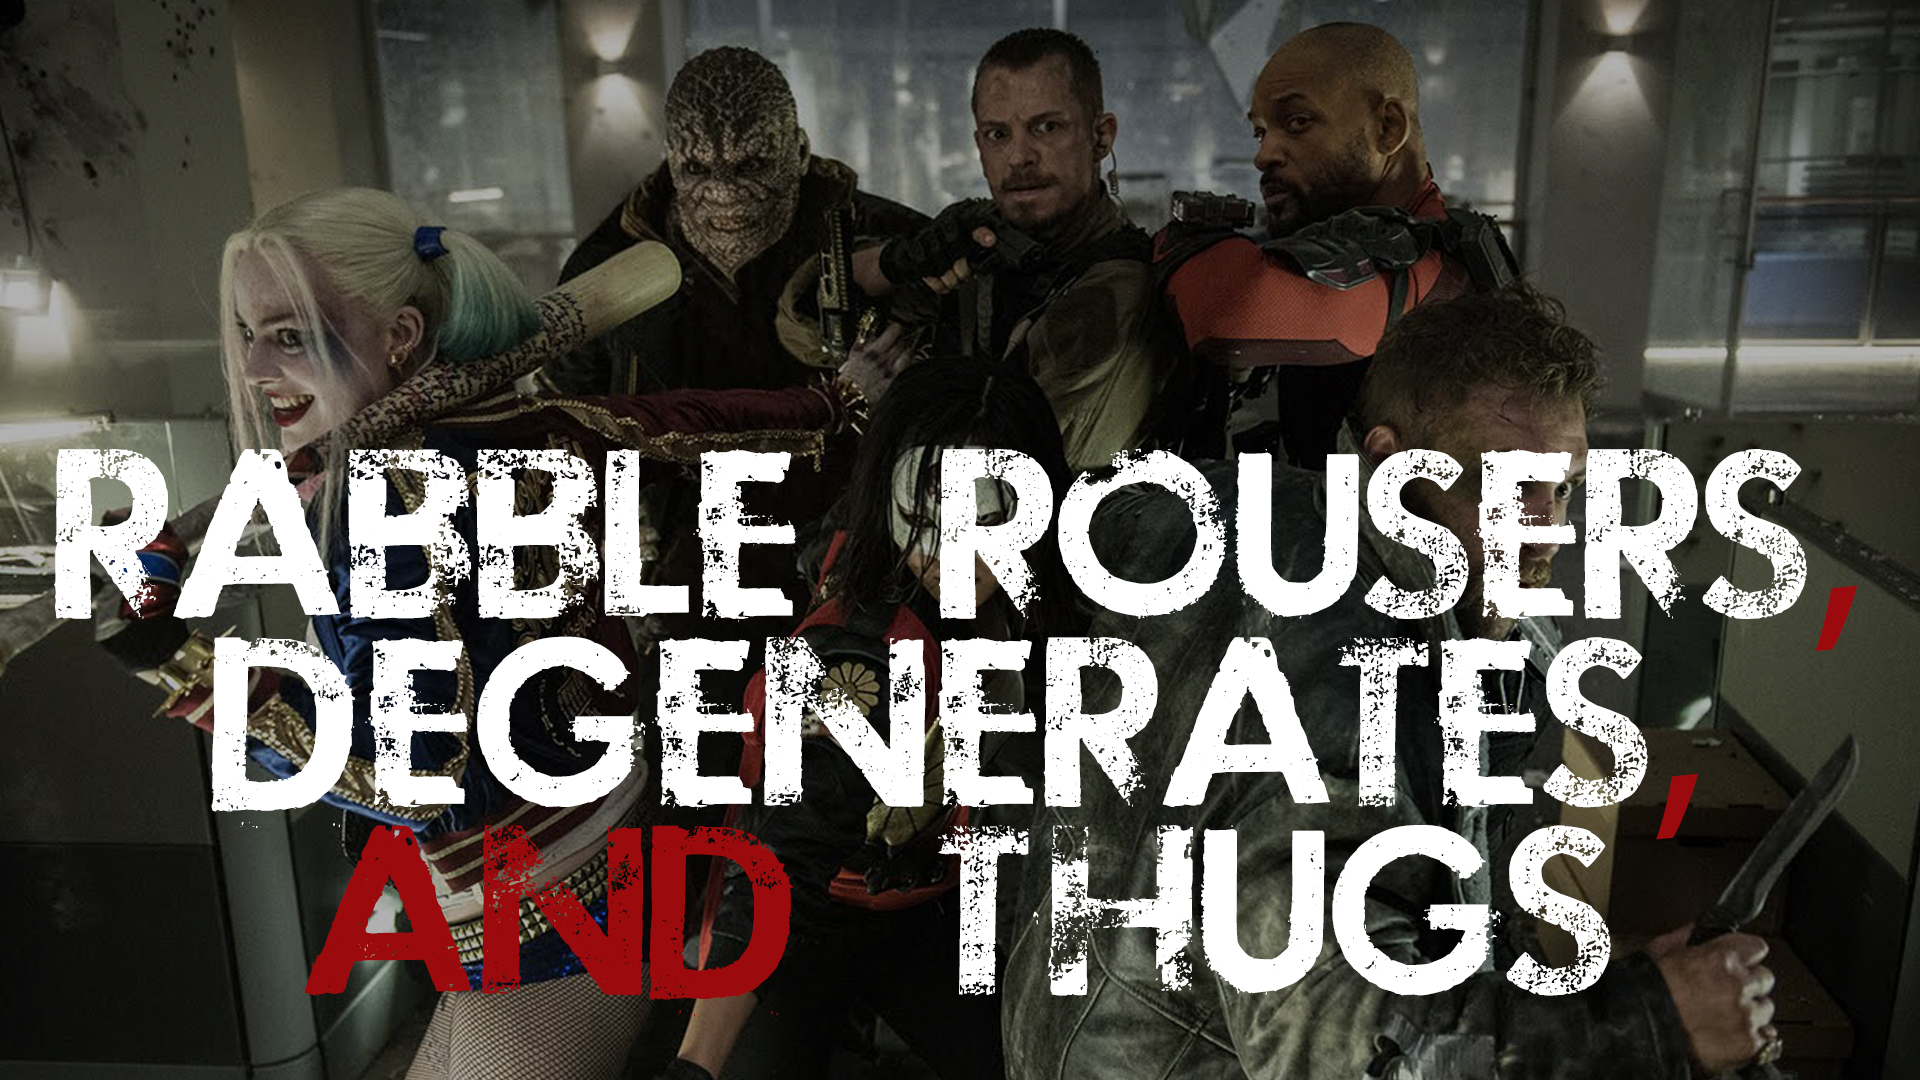 Rabble Rousers, Degenerates, and Thugs